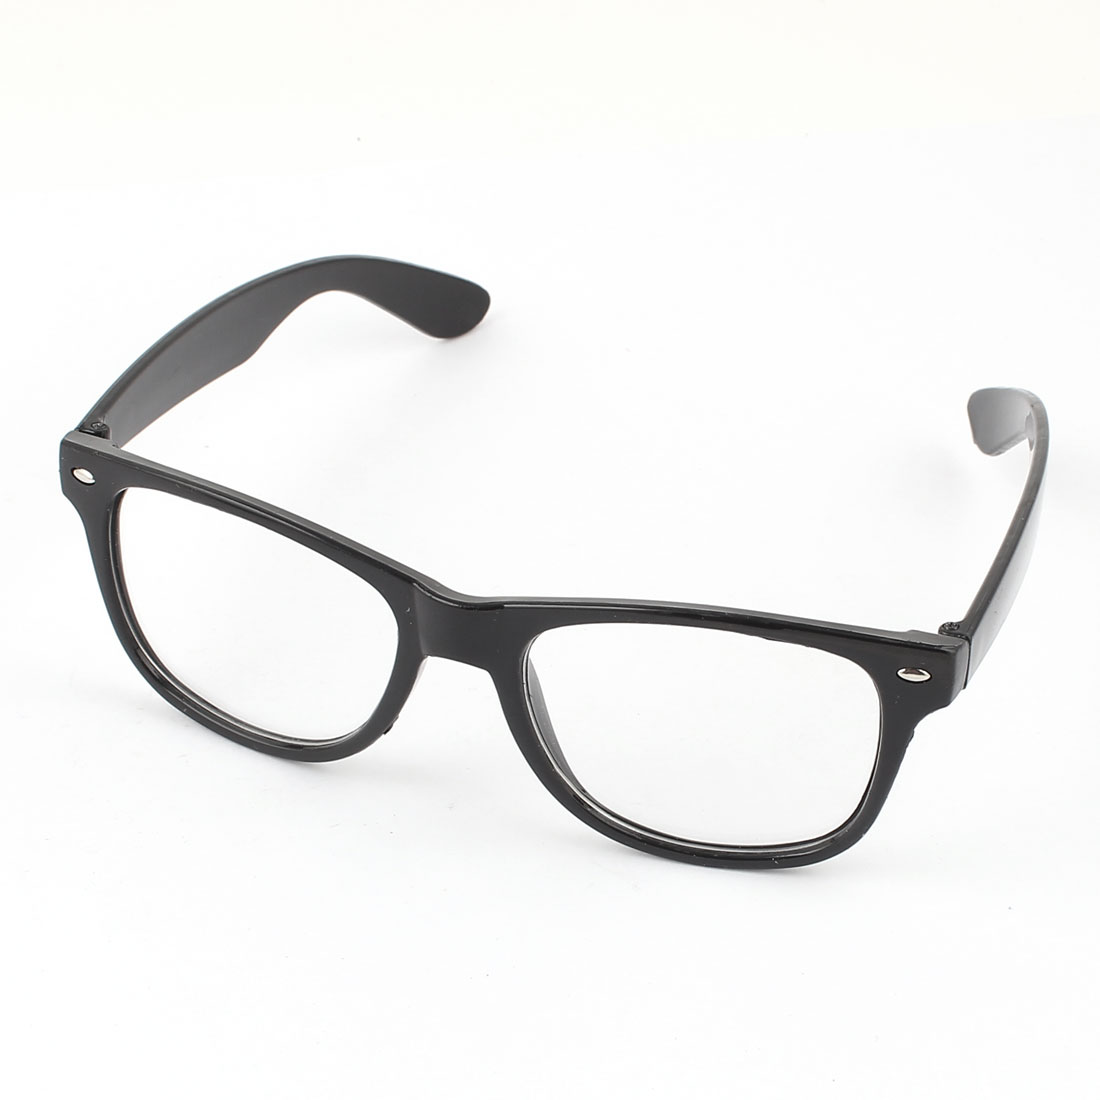 Unisex Plastic Black Full Rim Frame Single Bridge Clear Lens Plain Eyeglasses